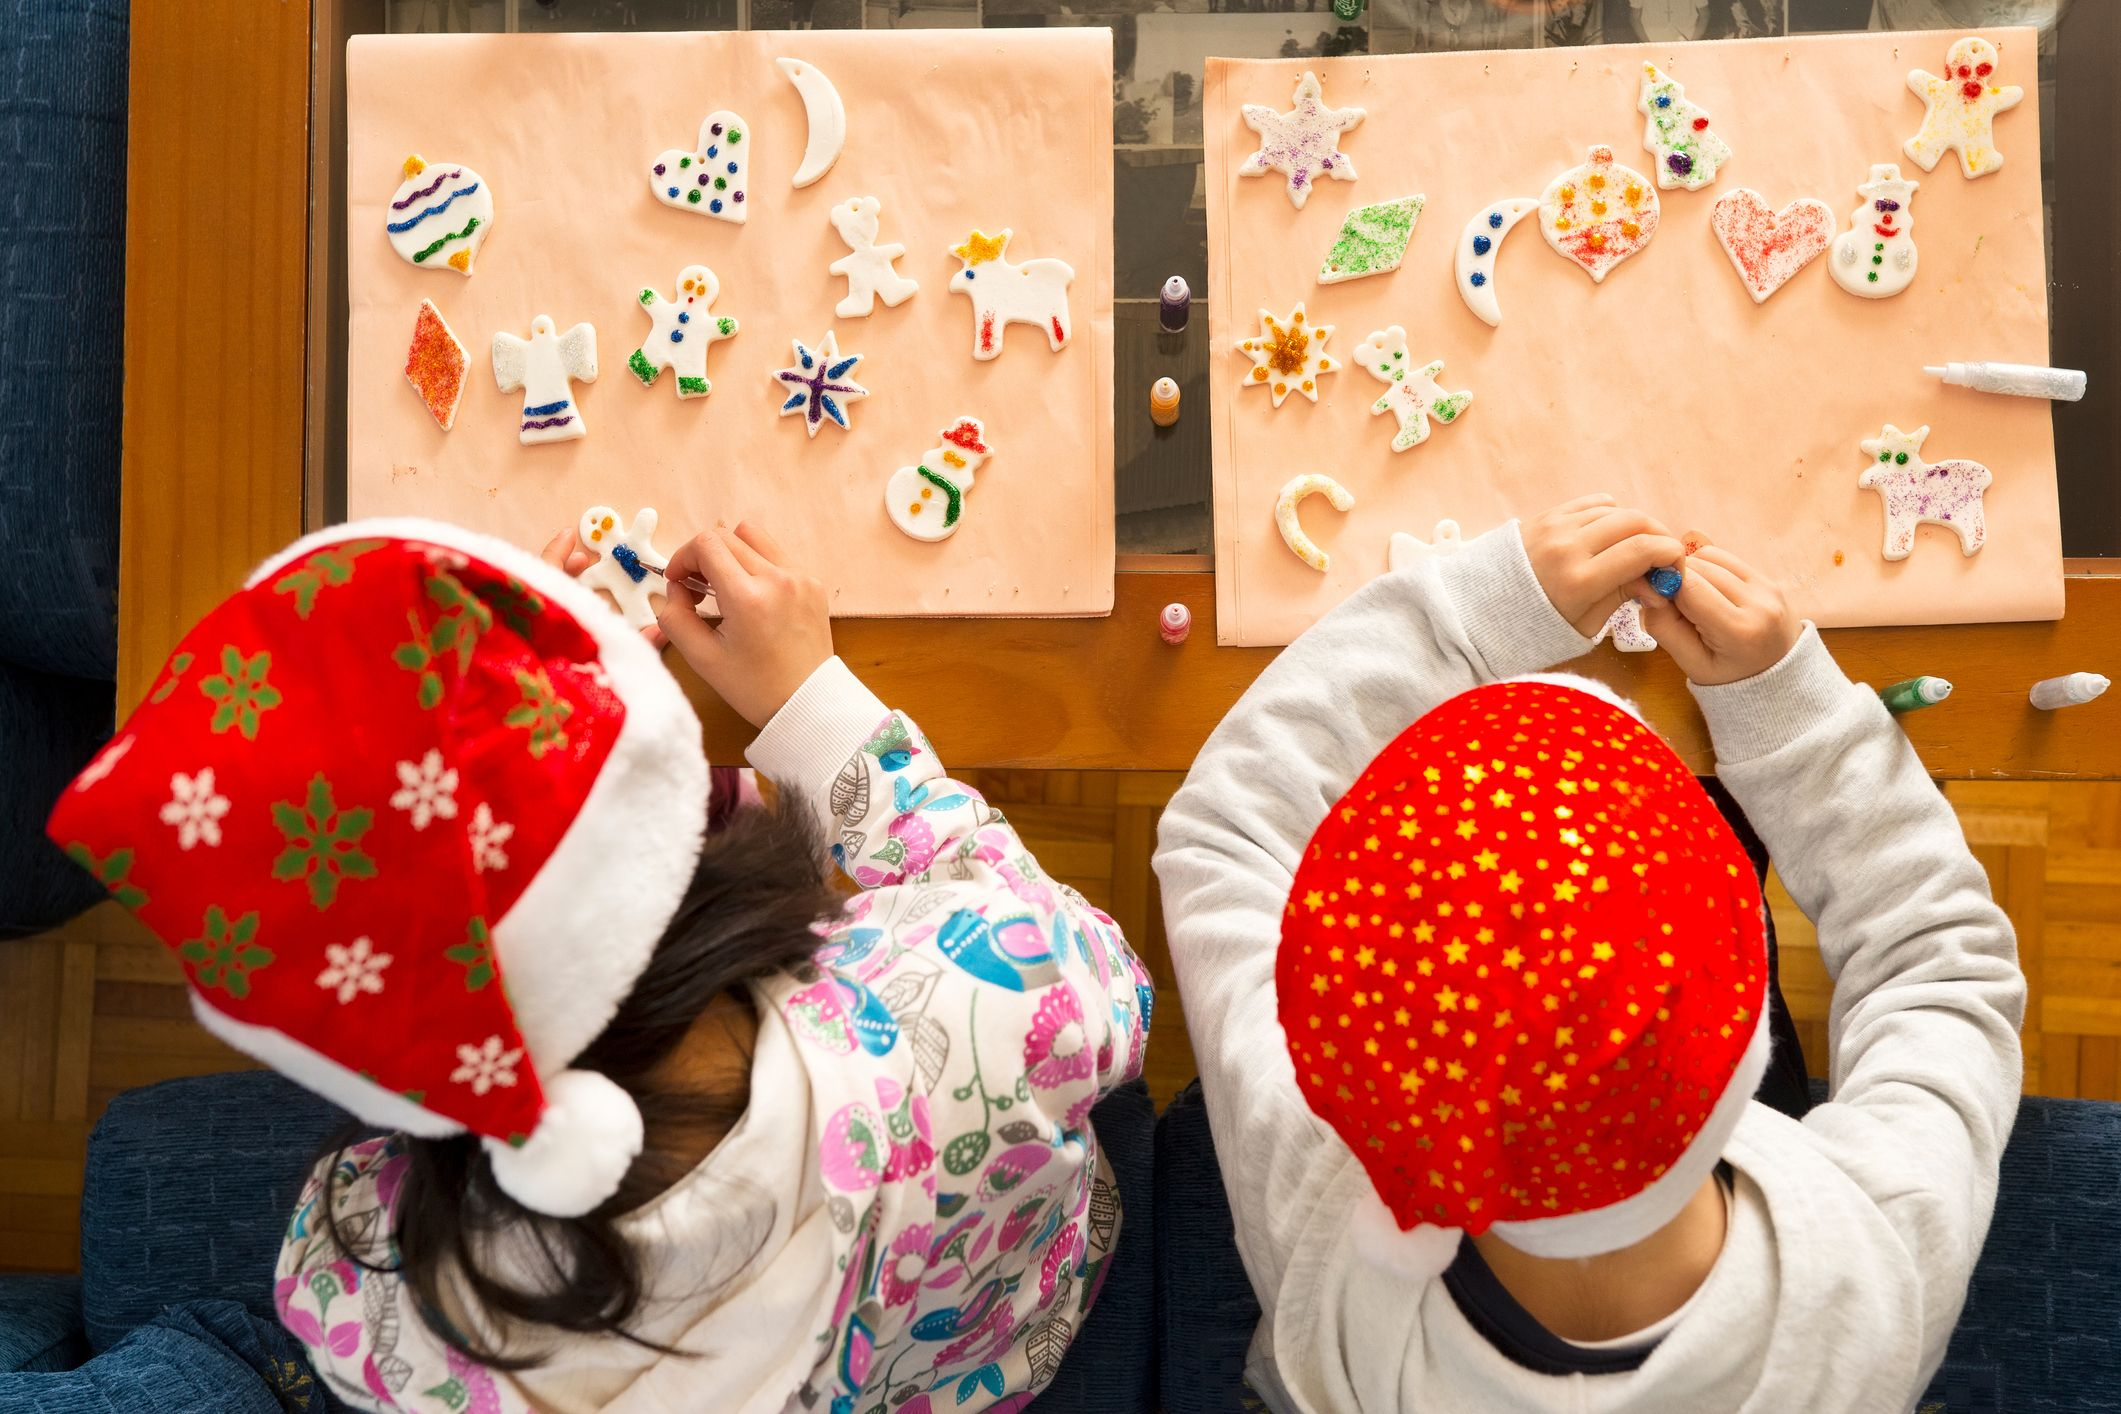 13 Festive Christmas Crafts For Kids That Won't Stress You Out